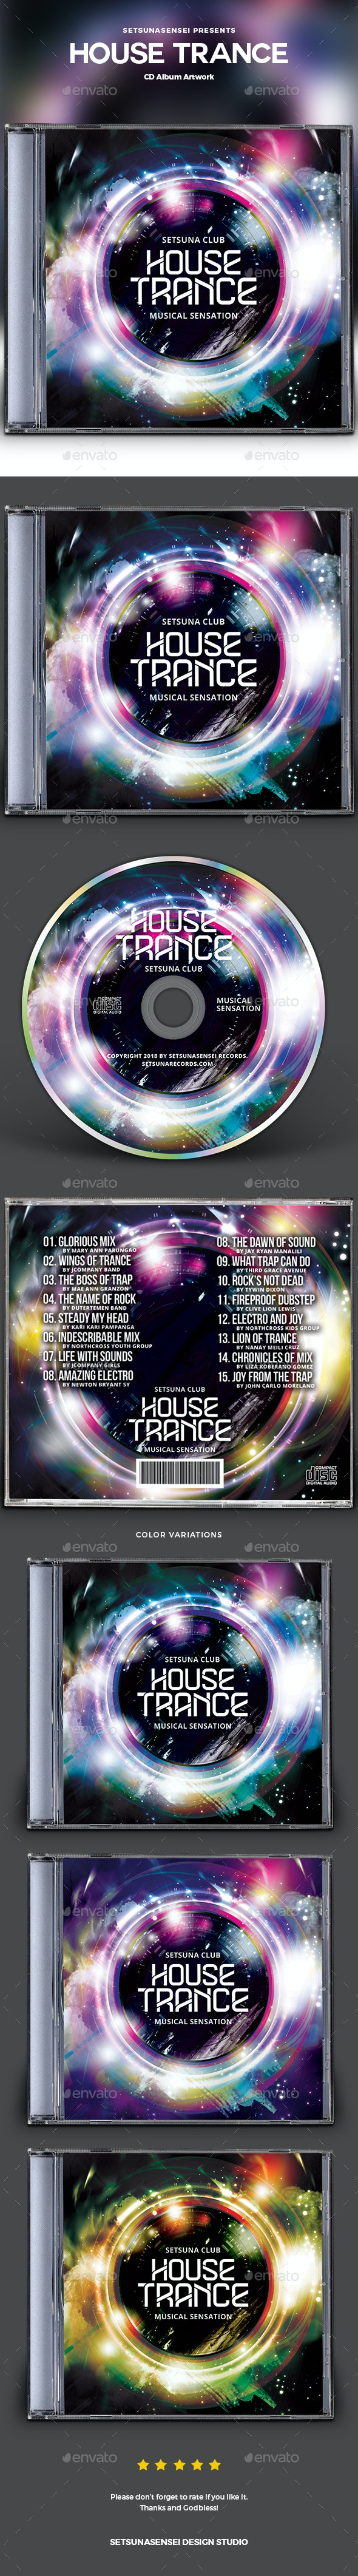 House Trance CD Album Artwork - CD & DVD Artwork Print Templates